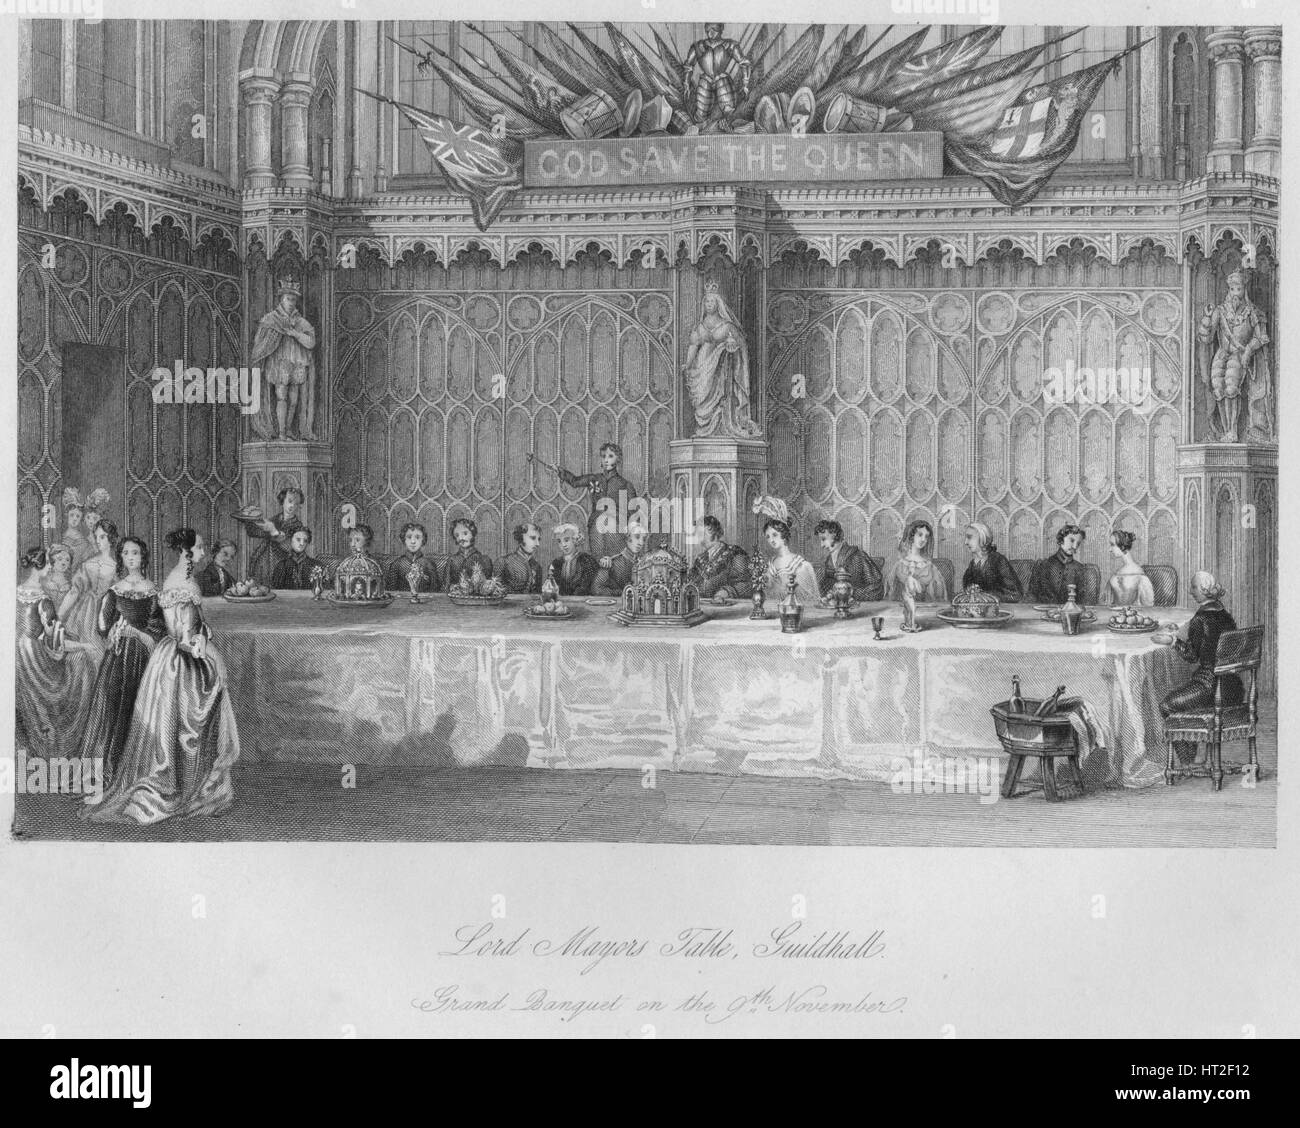 'Lord Mayors Table, Guildhall. Grand Banquet on the 9th November', c1841. Artist: John Shury. - Stock Image